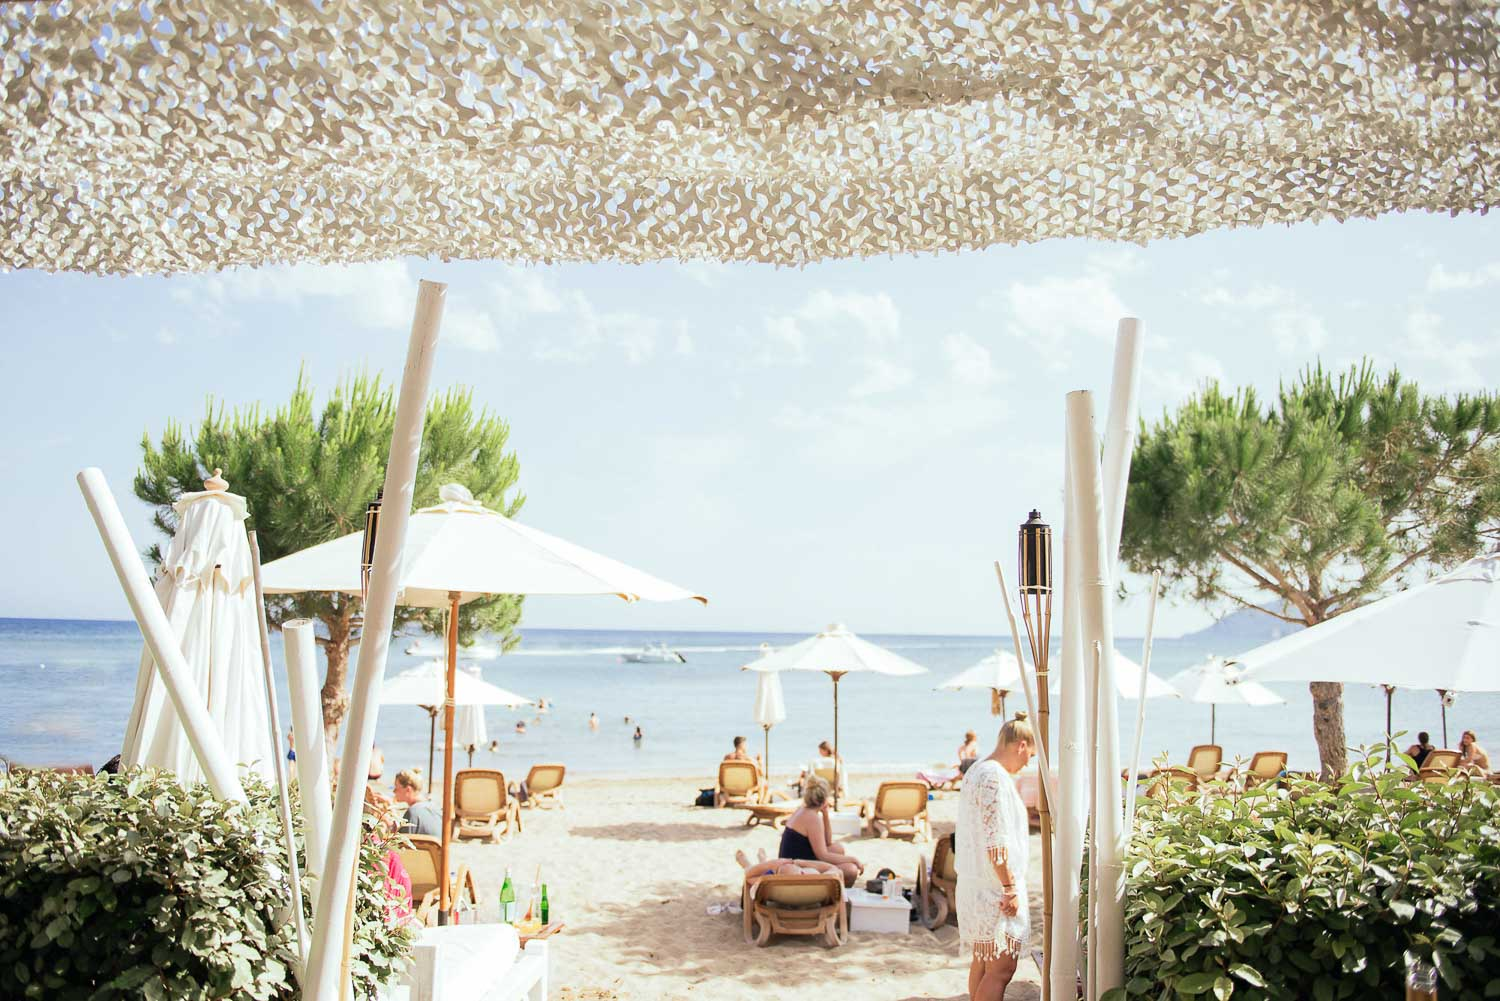 Pura Vida Ibiza wedding venue